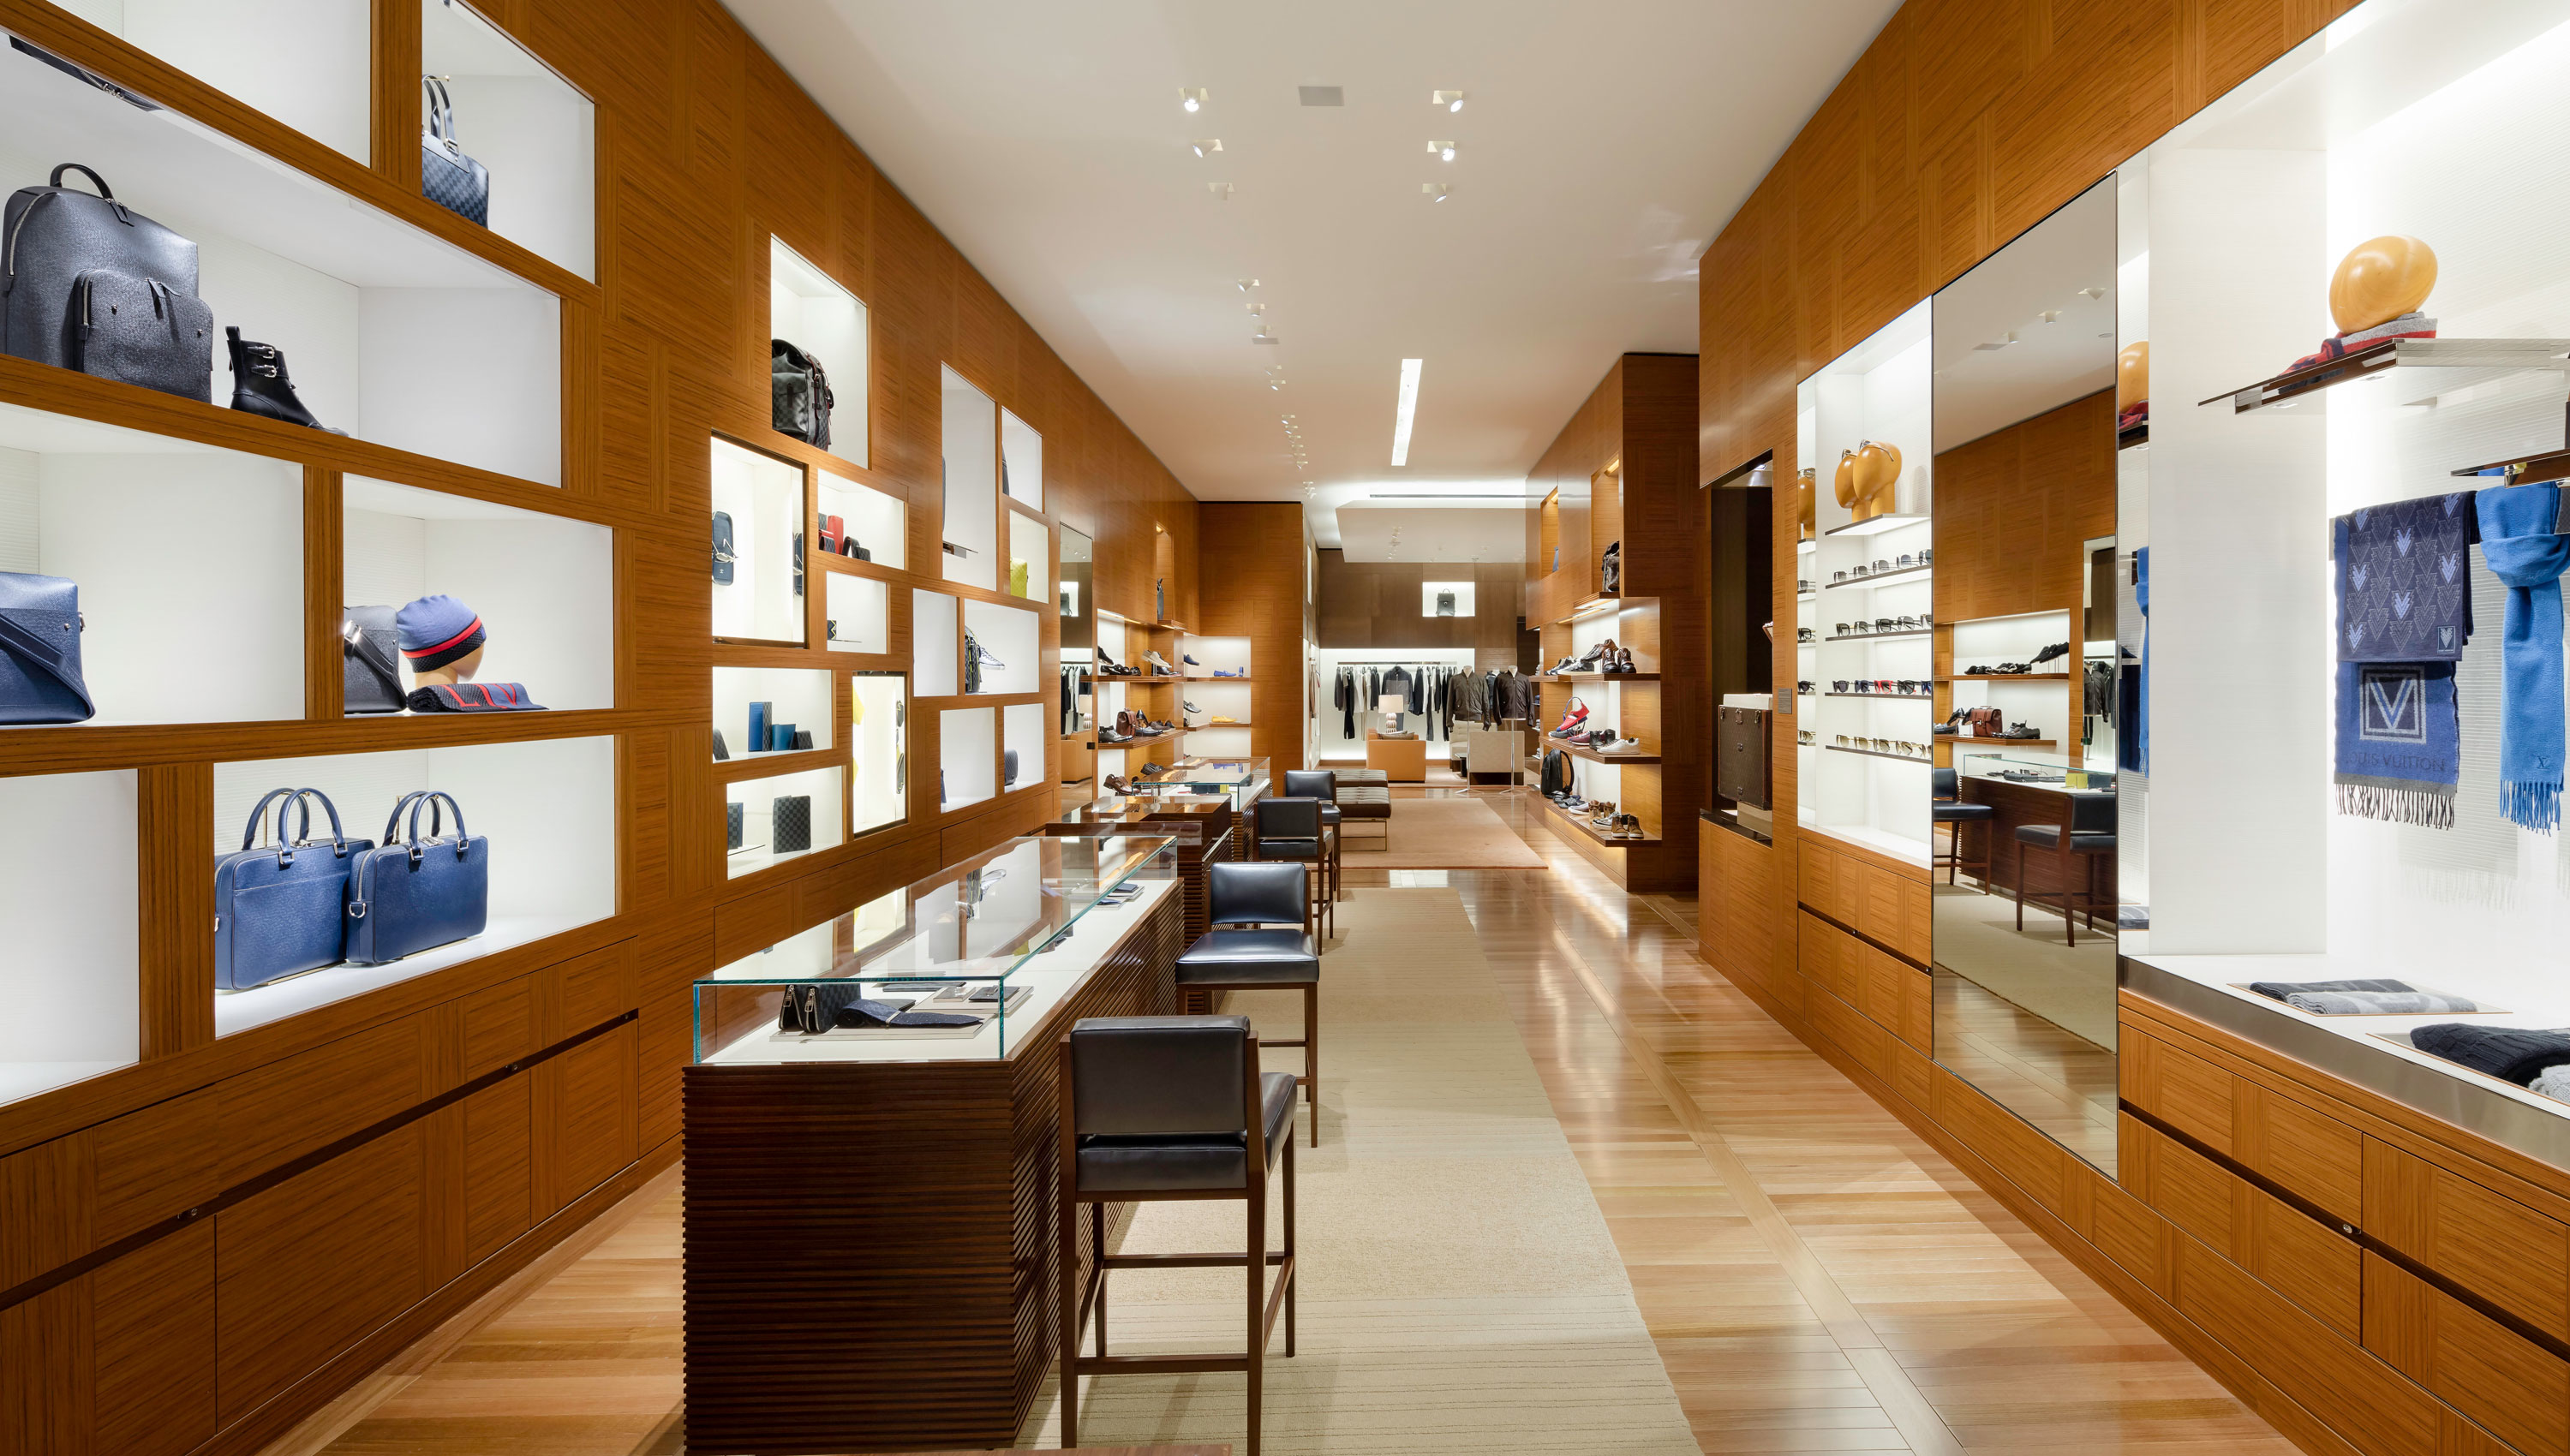 Louis Vuitton Manhasset image 2